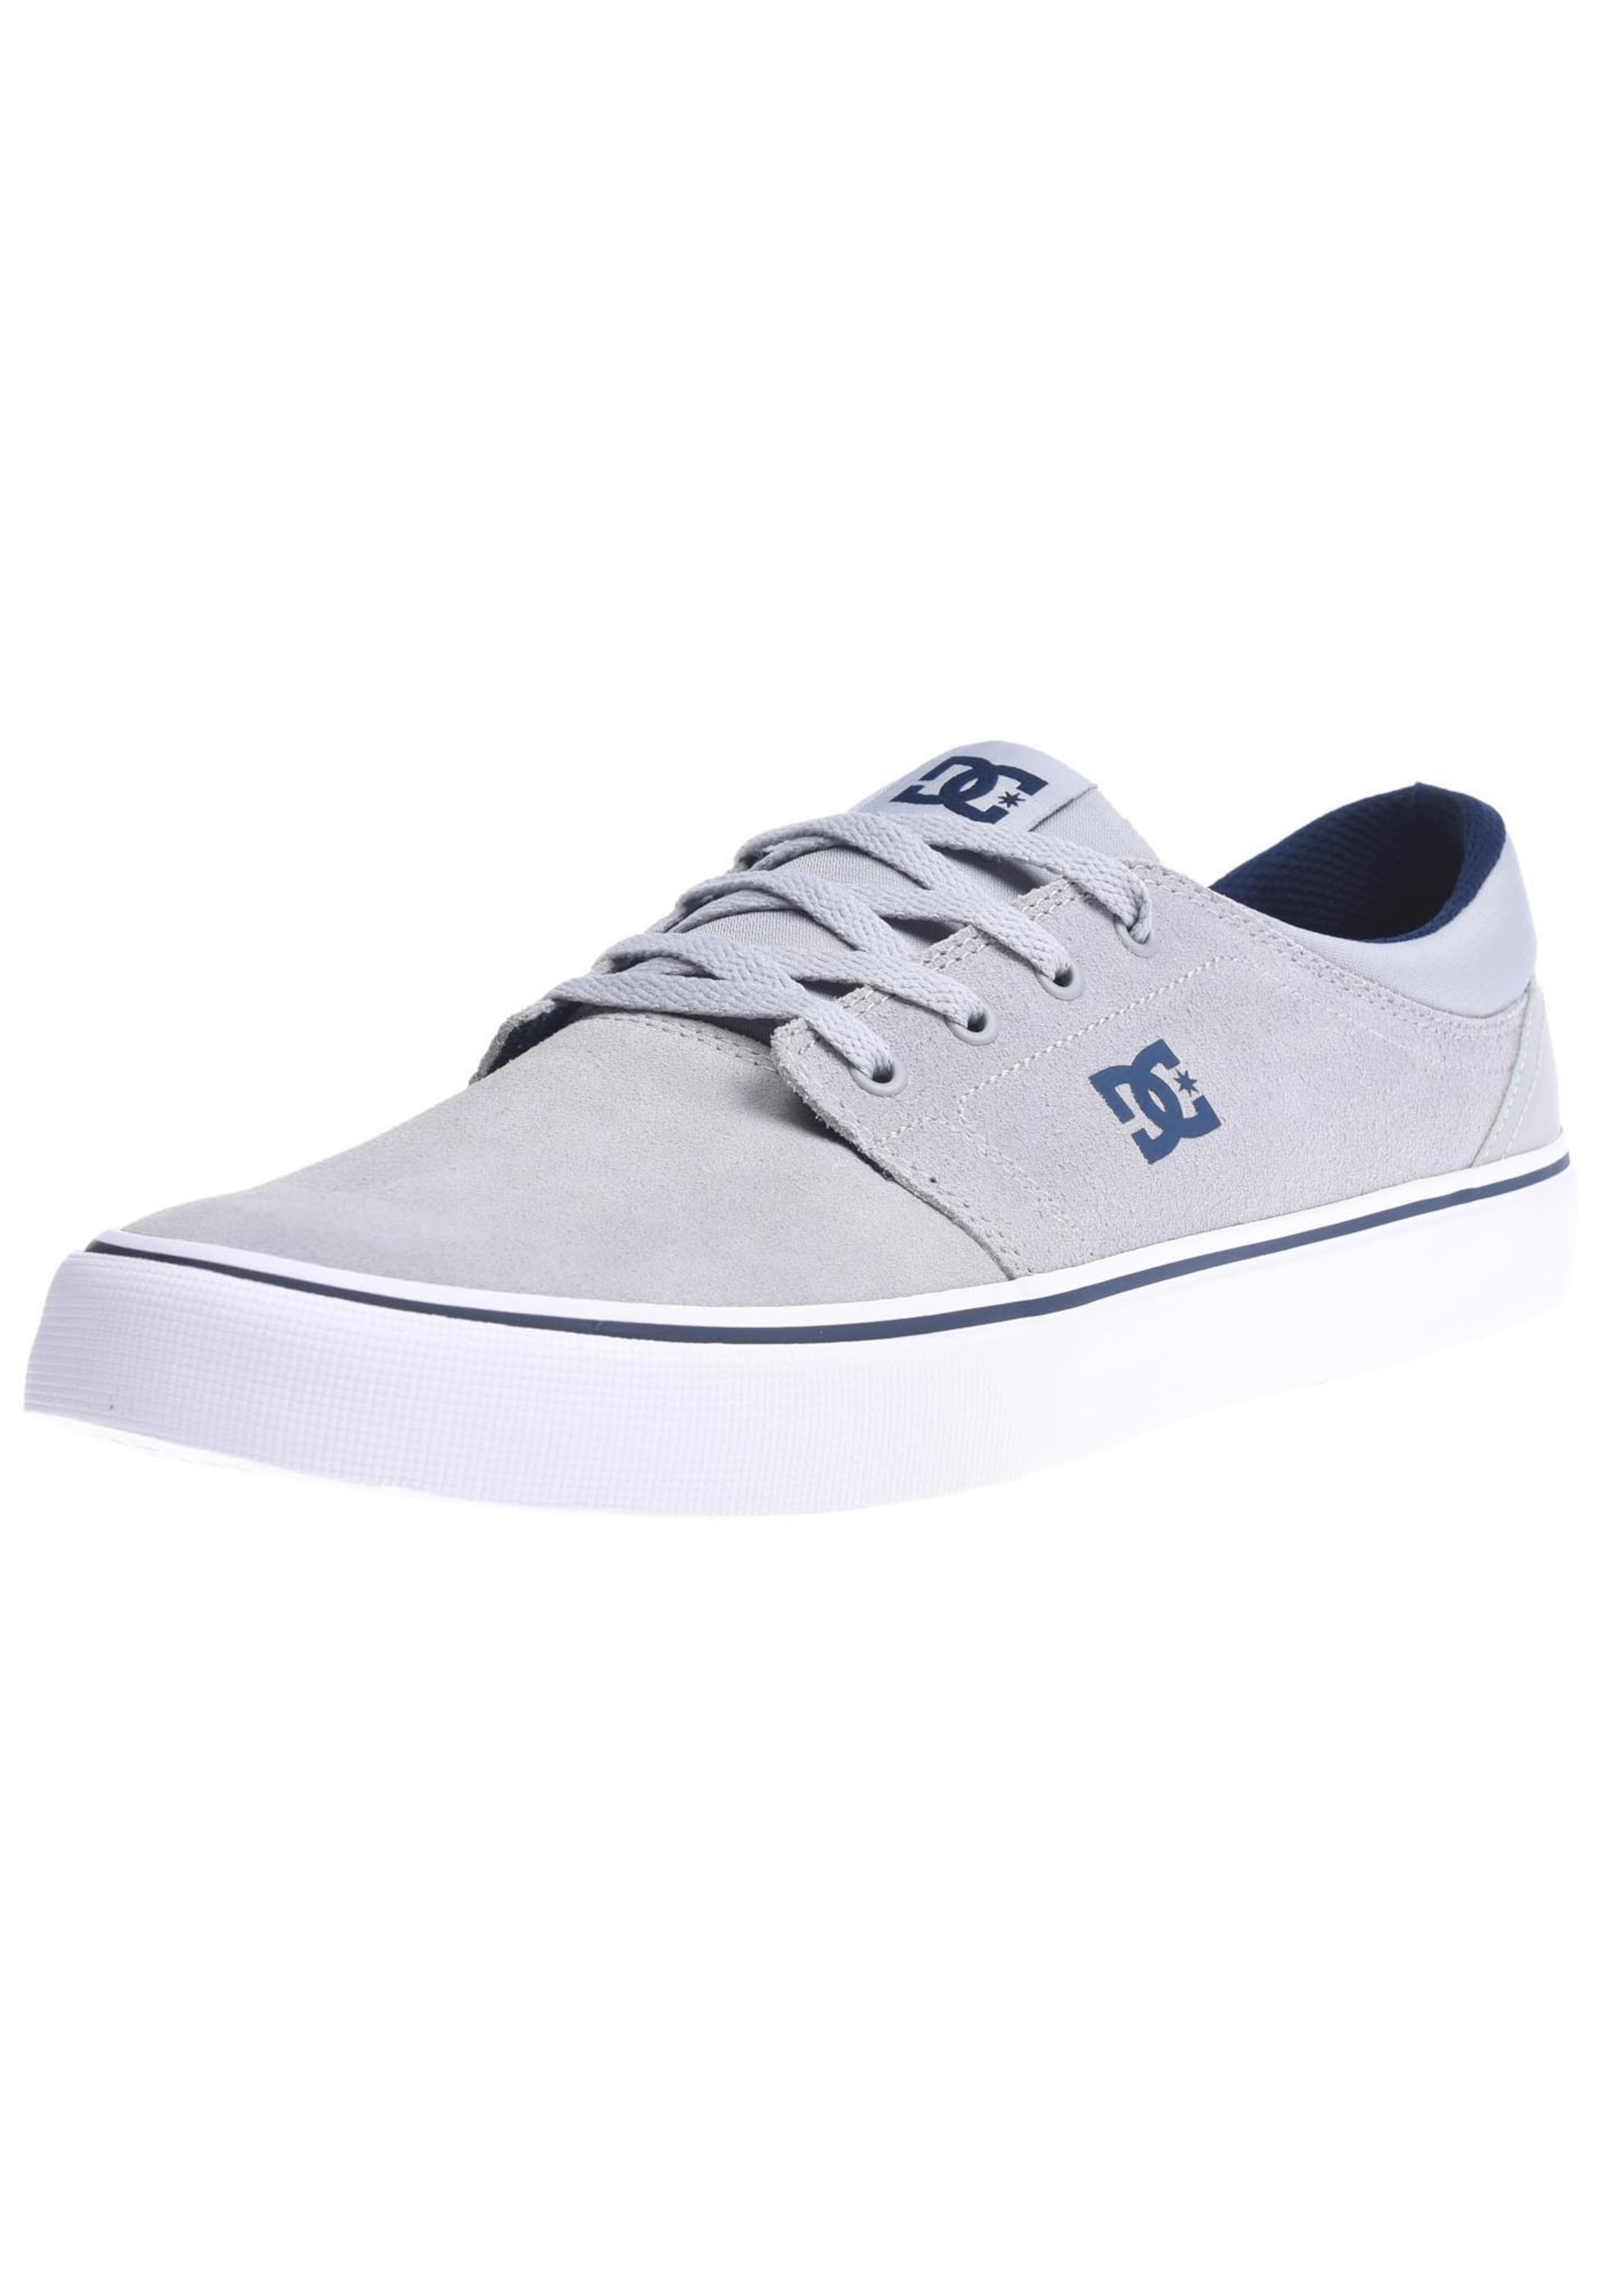 DC Shoes | Turnschuhe Trase S